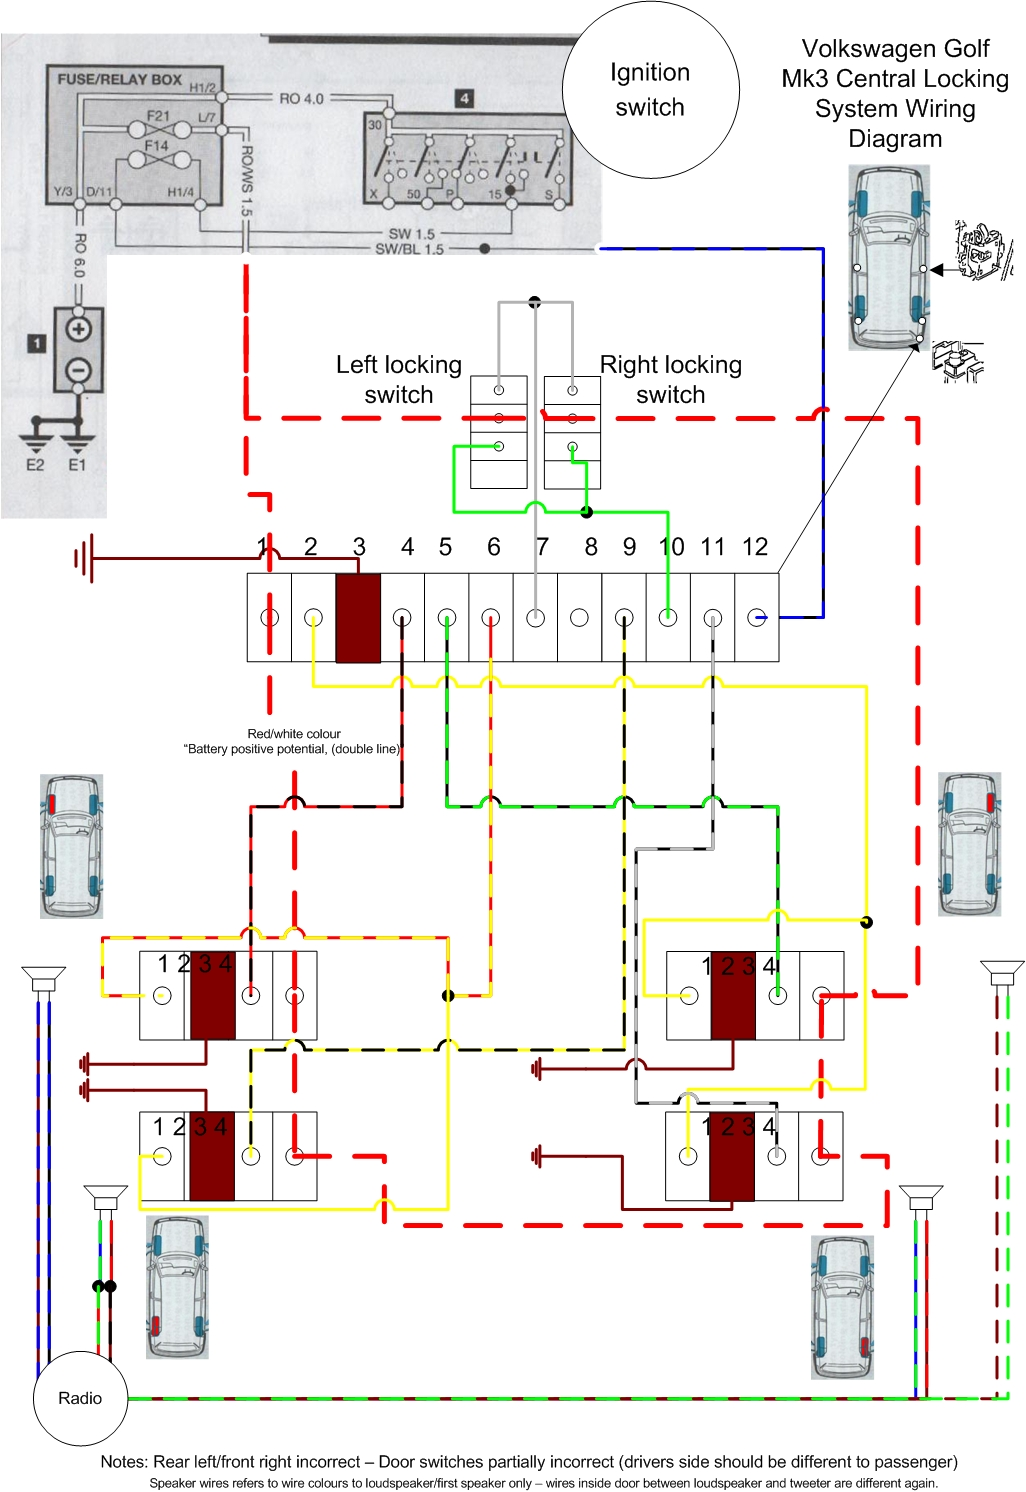 Rhino Central Locking Wiring Diagram Wiring Diagram